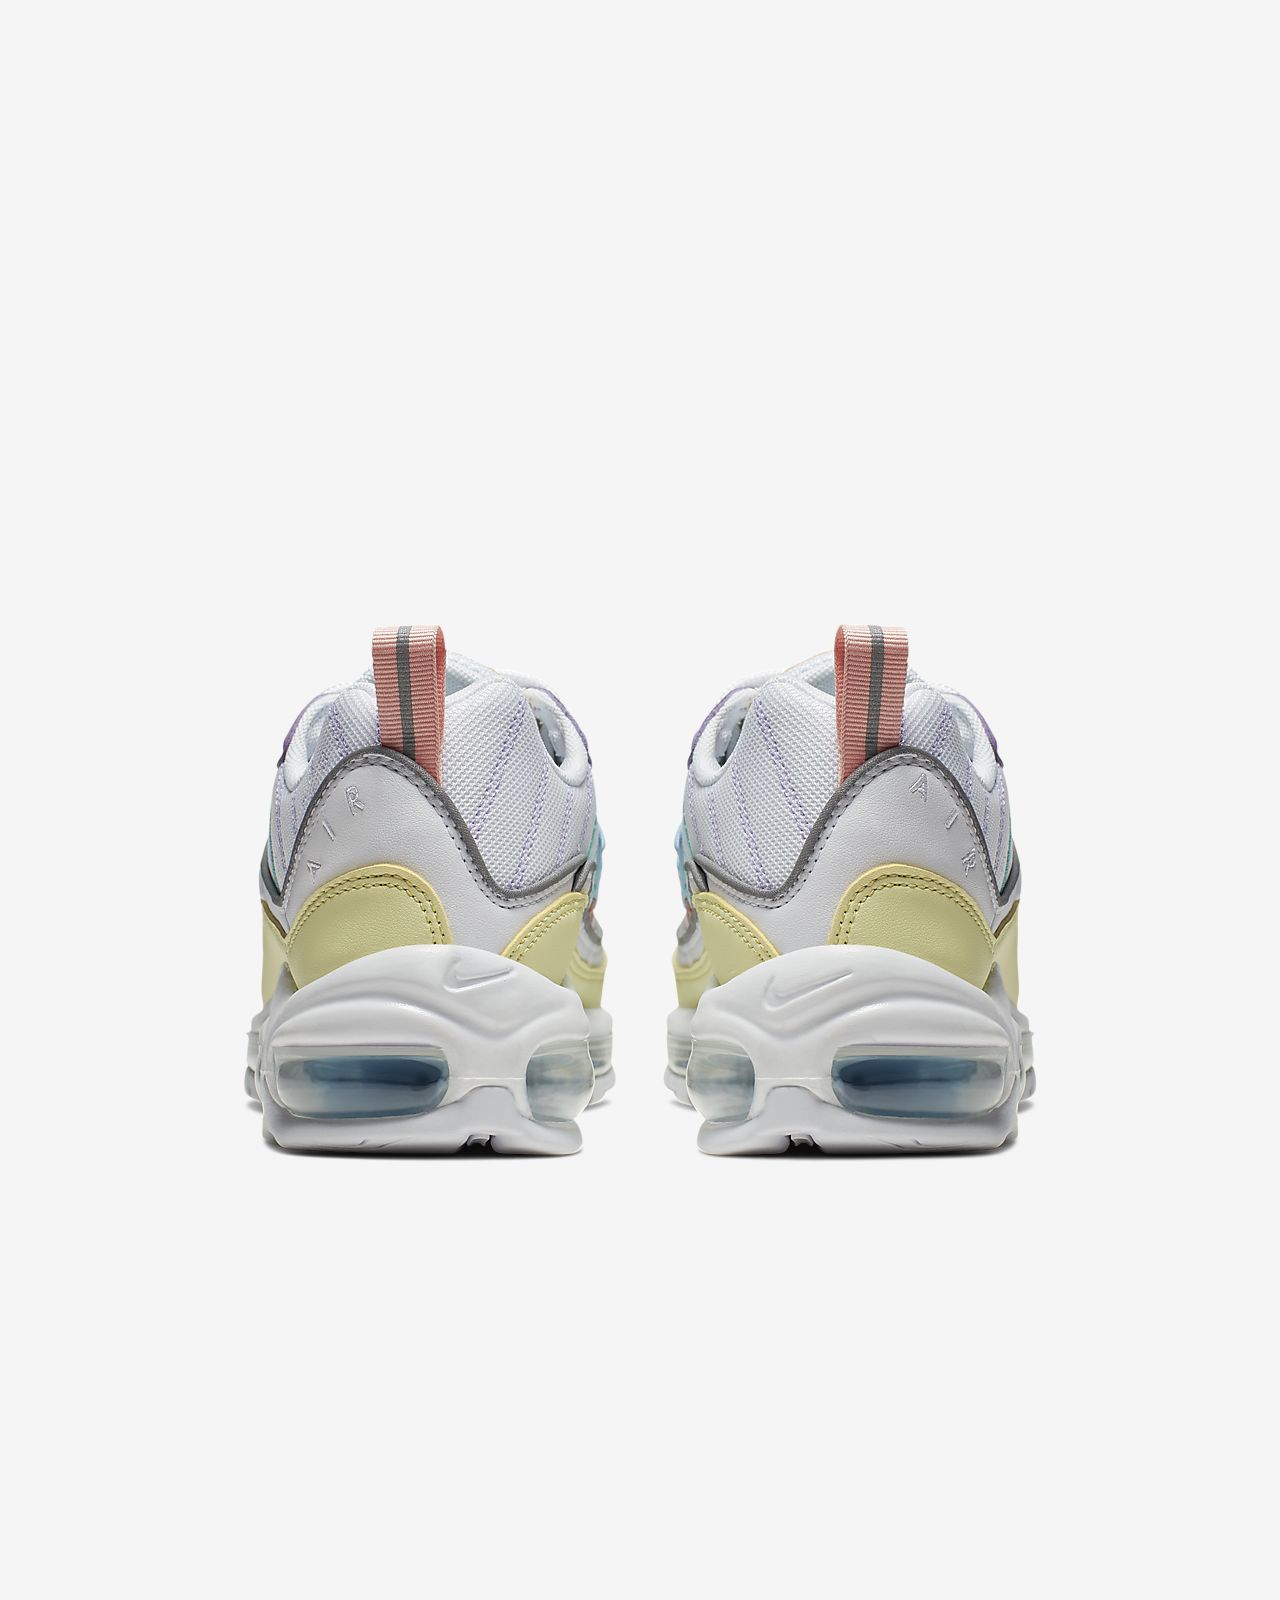 Chaussure Nike Air Pour Max 98 Femme Ygybf6v7